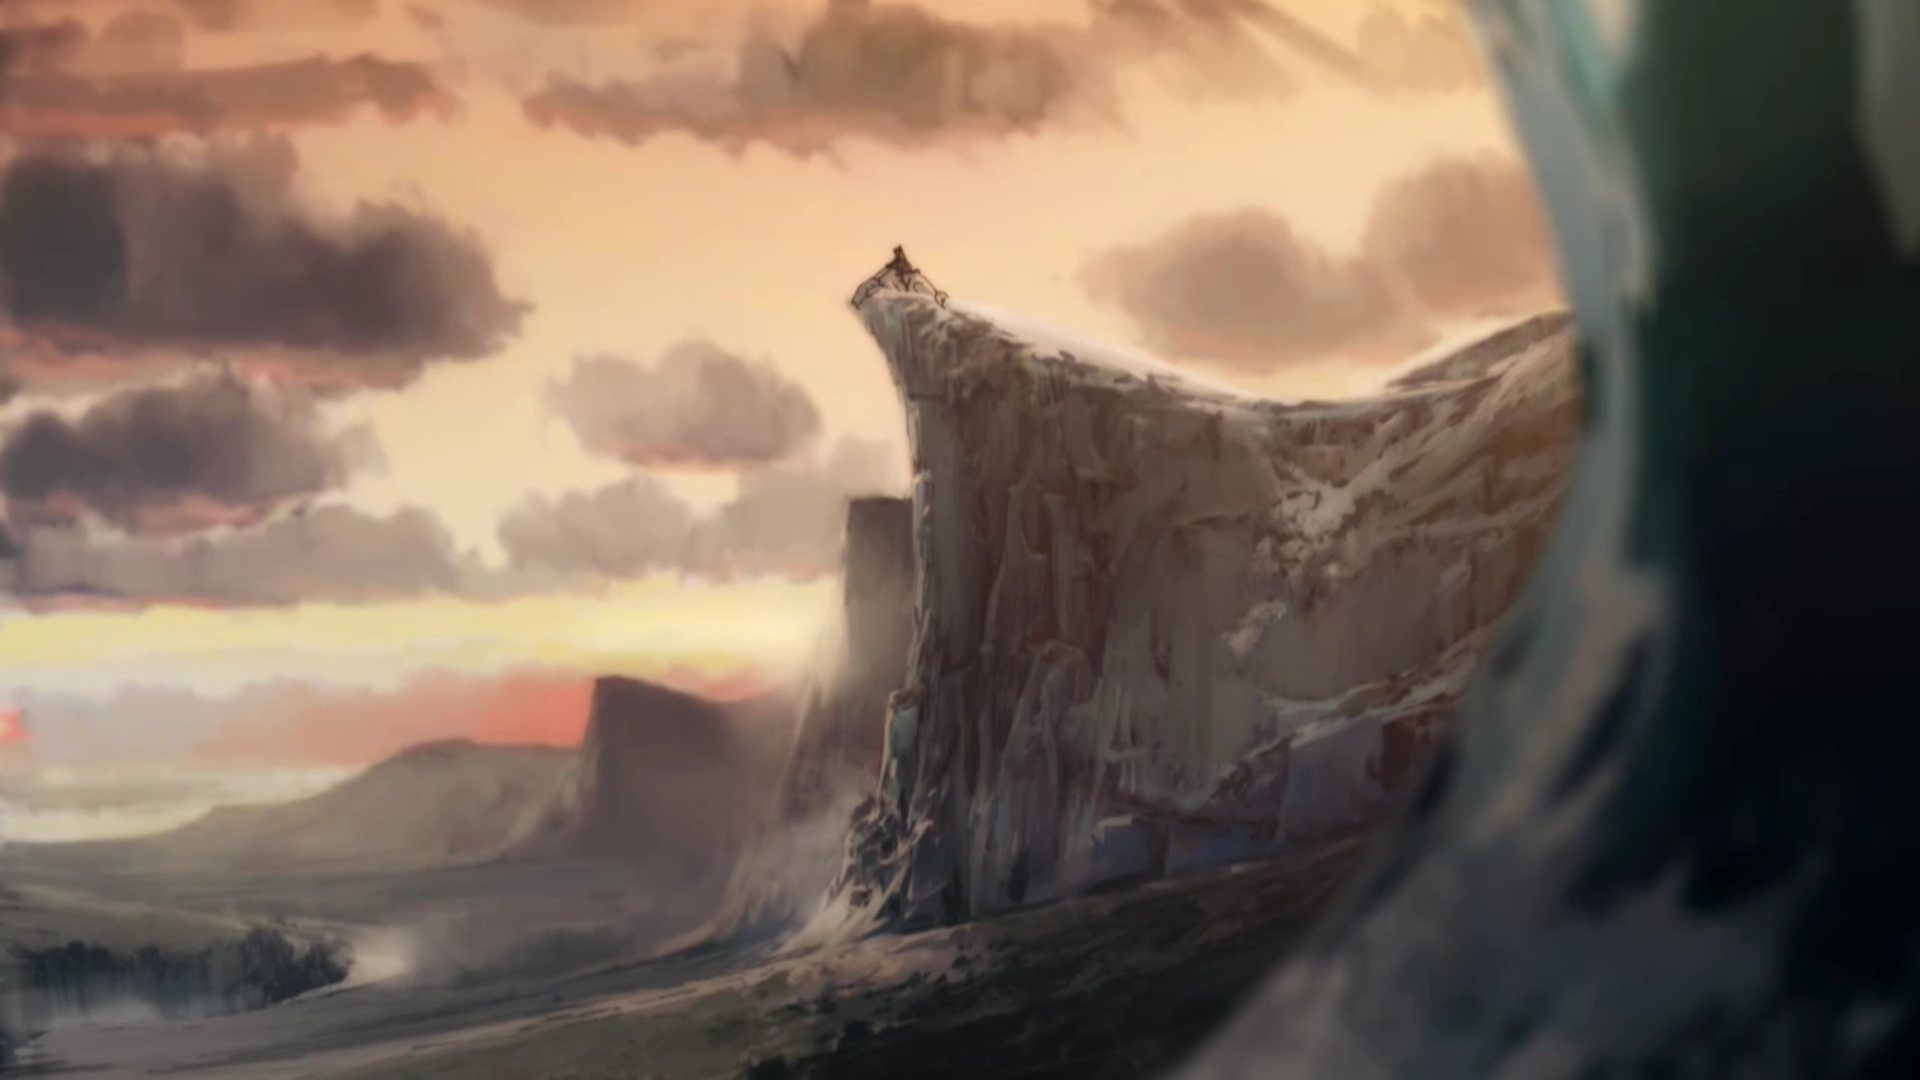 The legend of korra wallpaper 16642 1920x1080 px hdwallsource the legend of korra wallpaper 16642 voltagebd Images